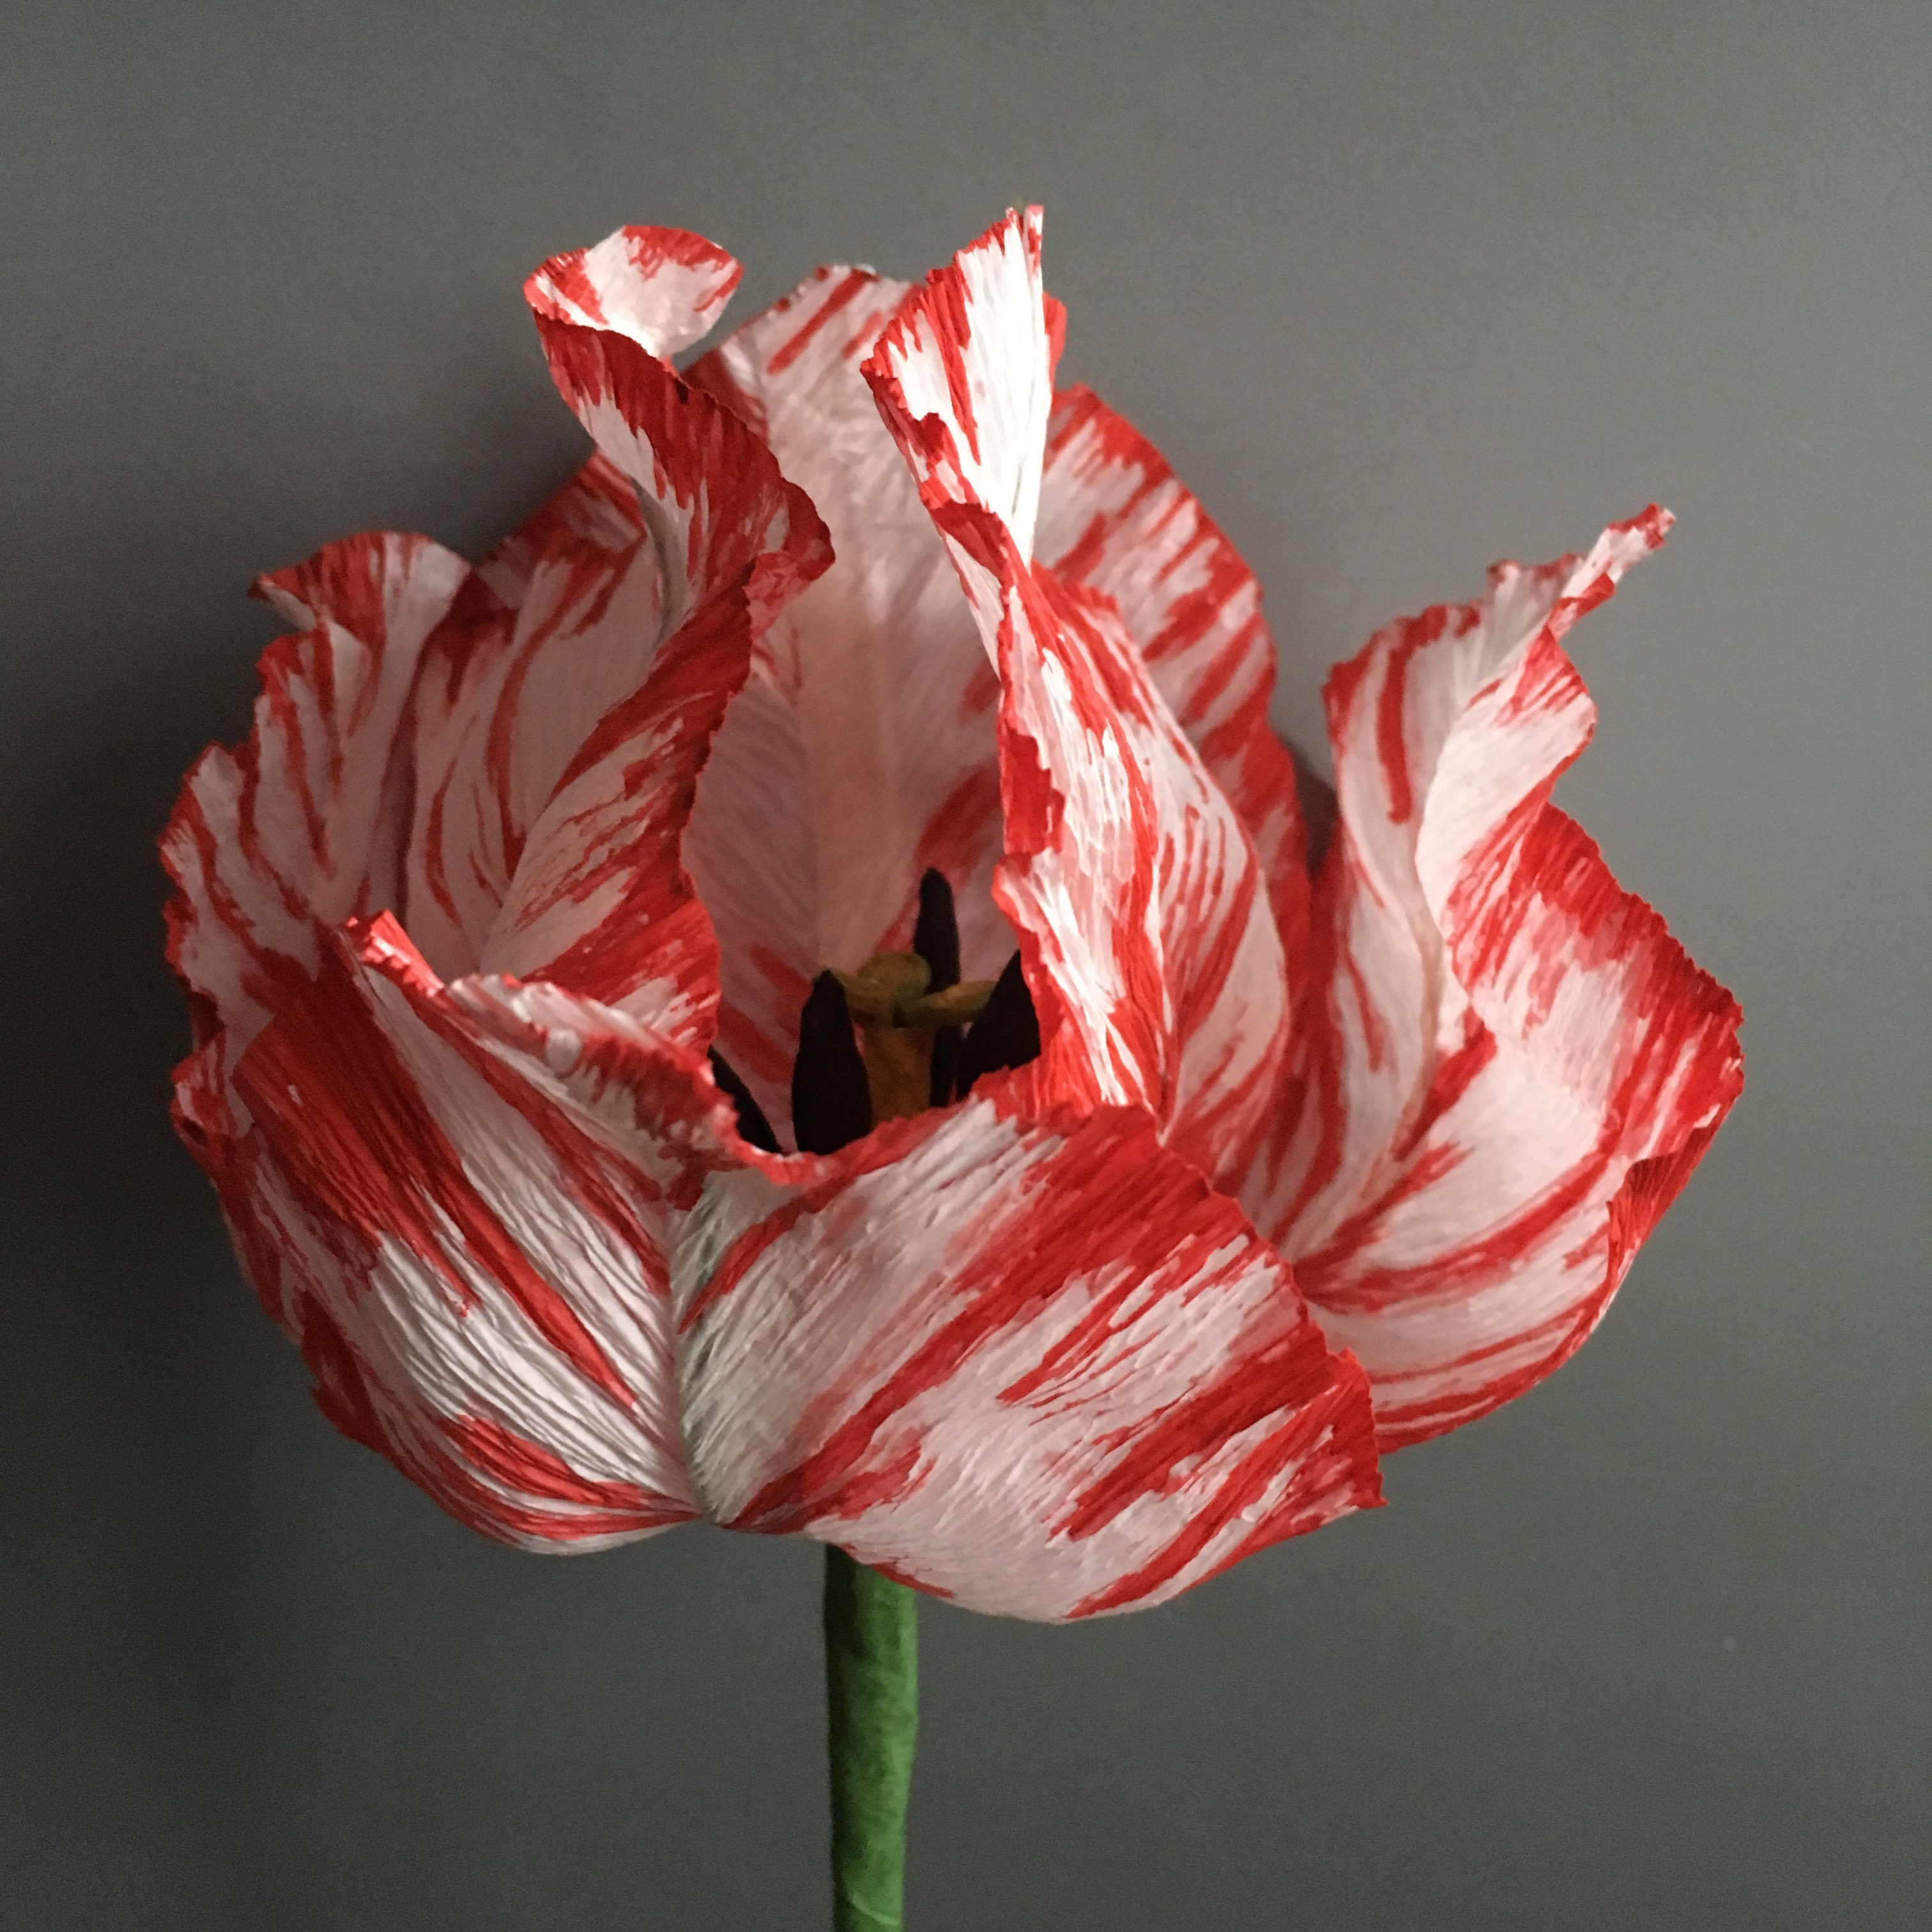 red and white petals of Semper Augustus tulip